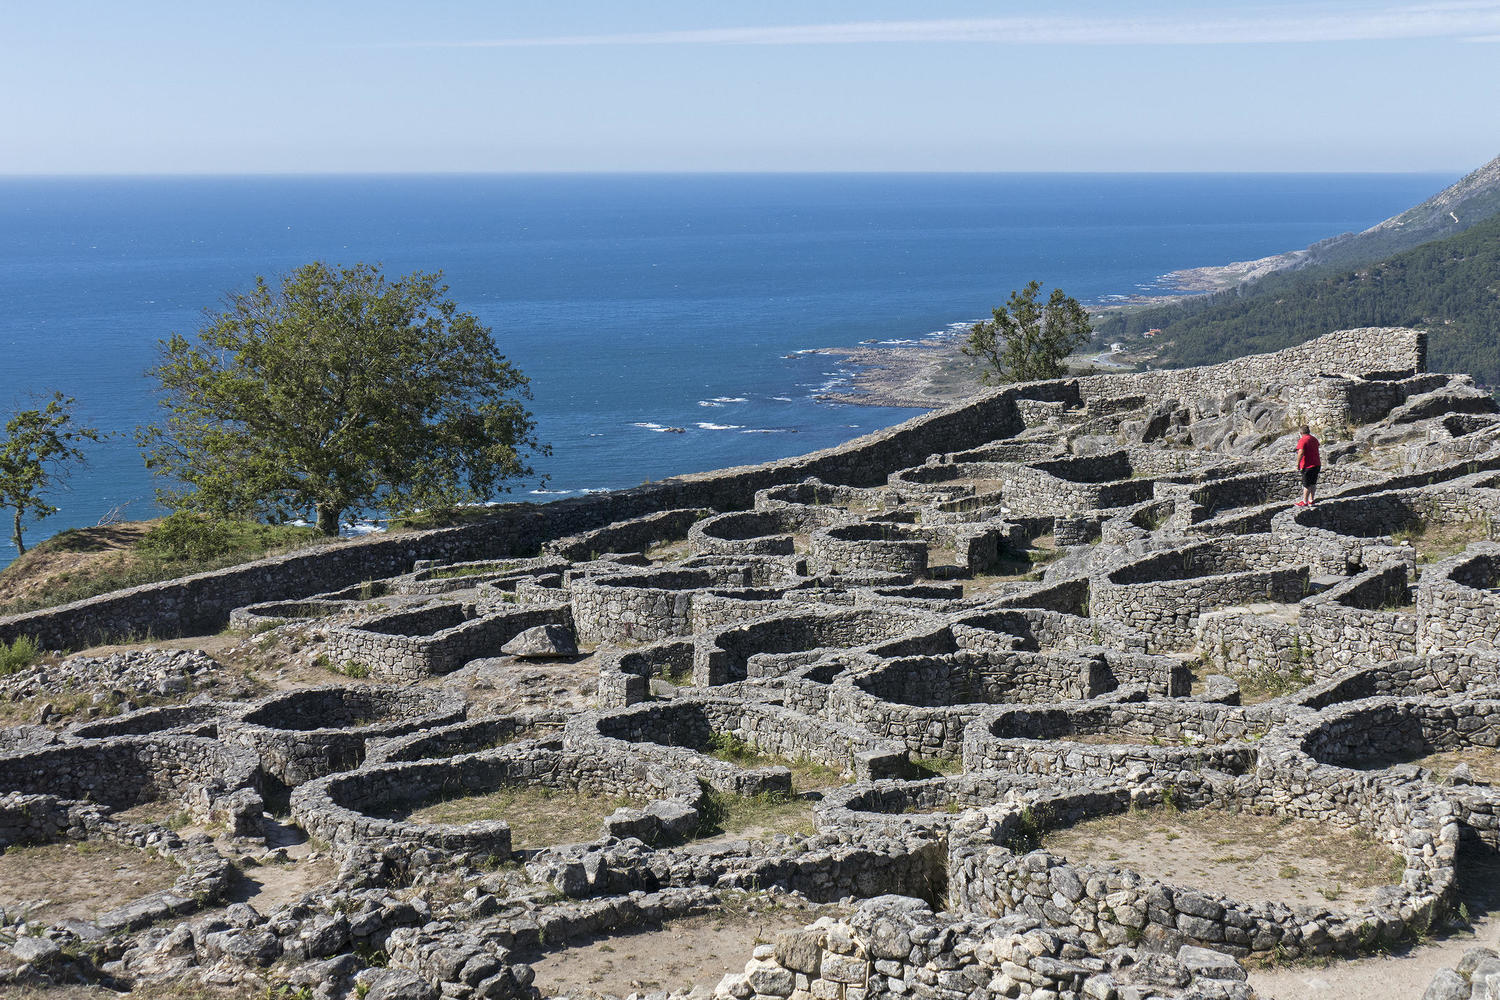 The Iron age settlement of Santa Tecla over the mouth of the Minho river and the Atlantic ocean.